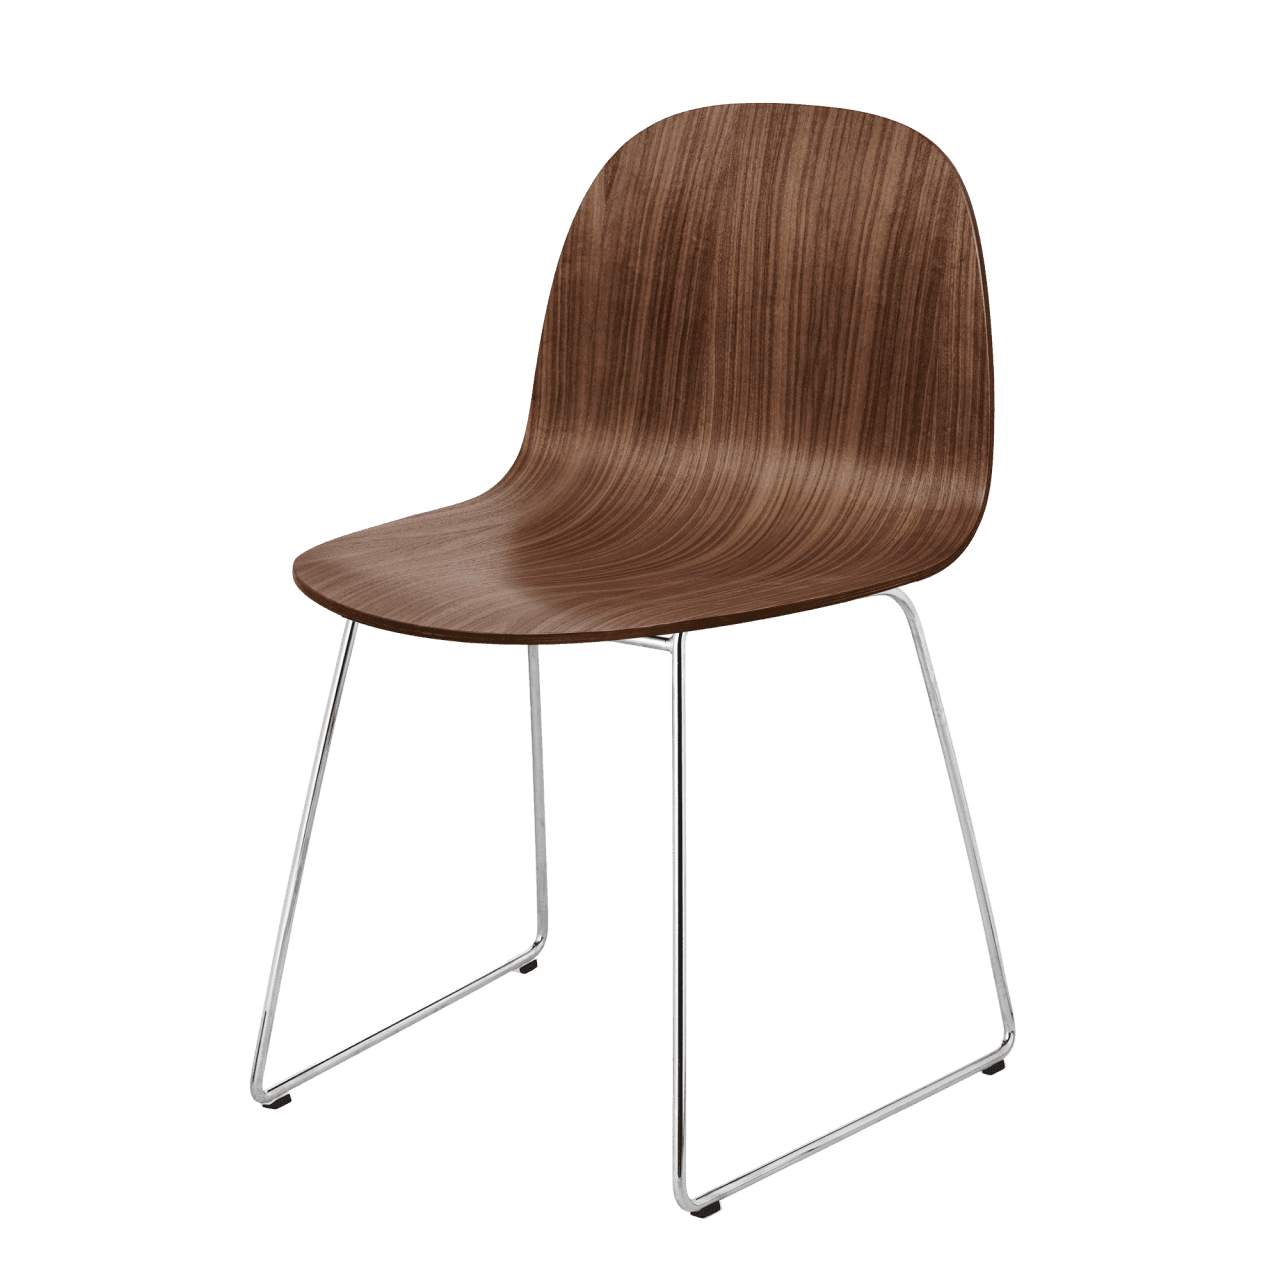 2D DIning Chair Kufengestell